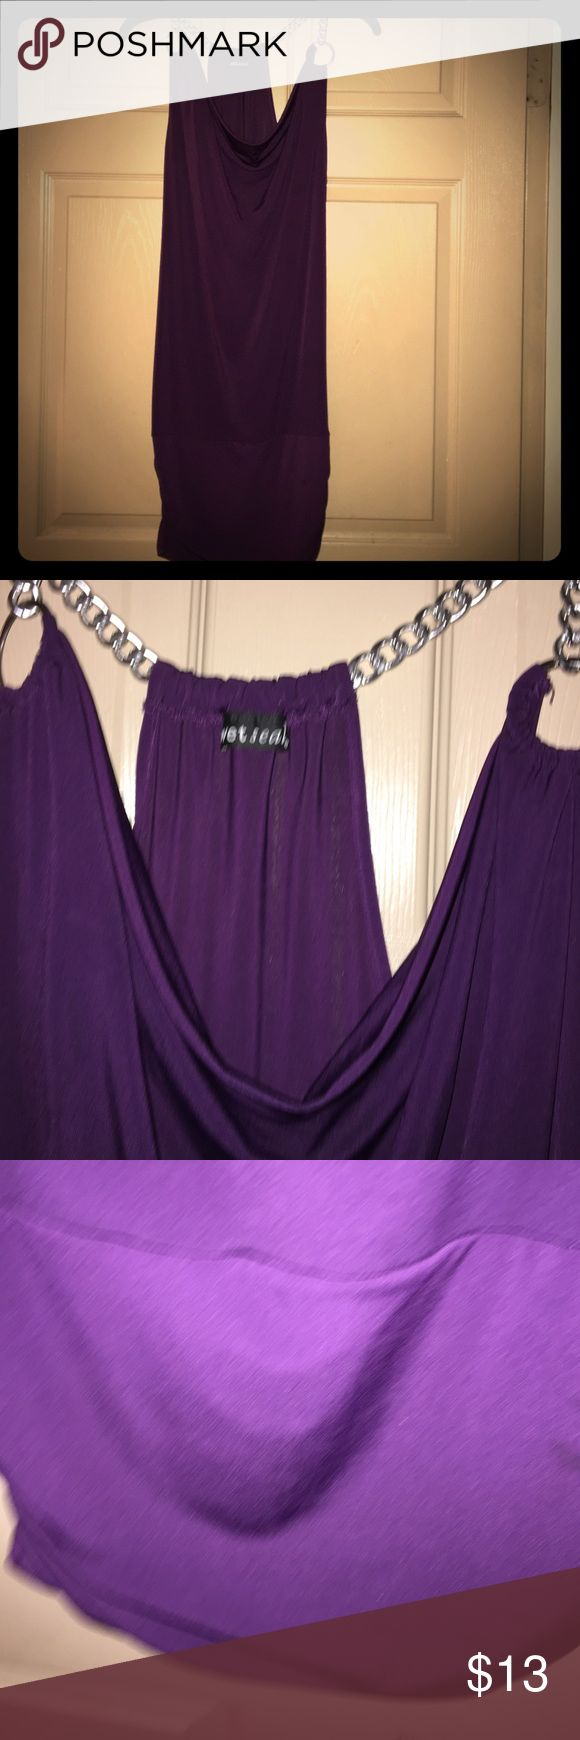 MAKE AN OFFER‼️Wet Seal Party Dress Size Small MAKE AN OFFER‼️Wet Seal Party Dress Size Small Plum Excellent Condition Wet Seal Dresses Mini